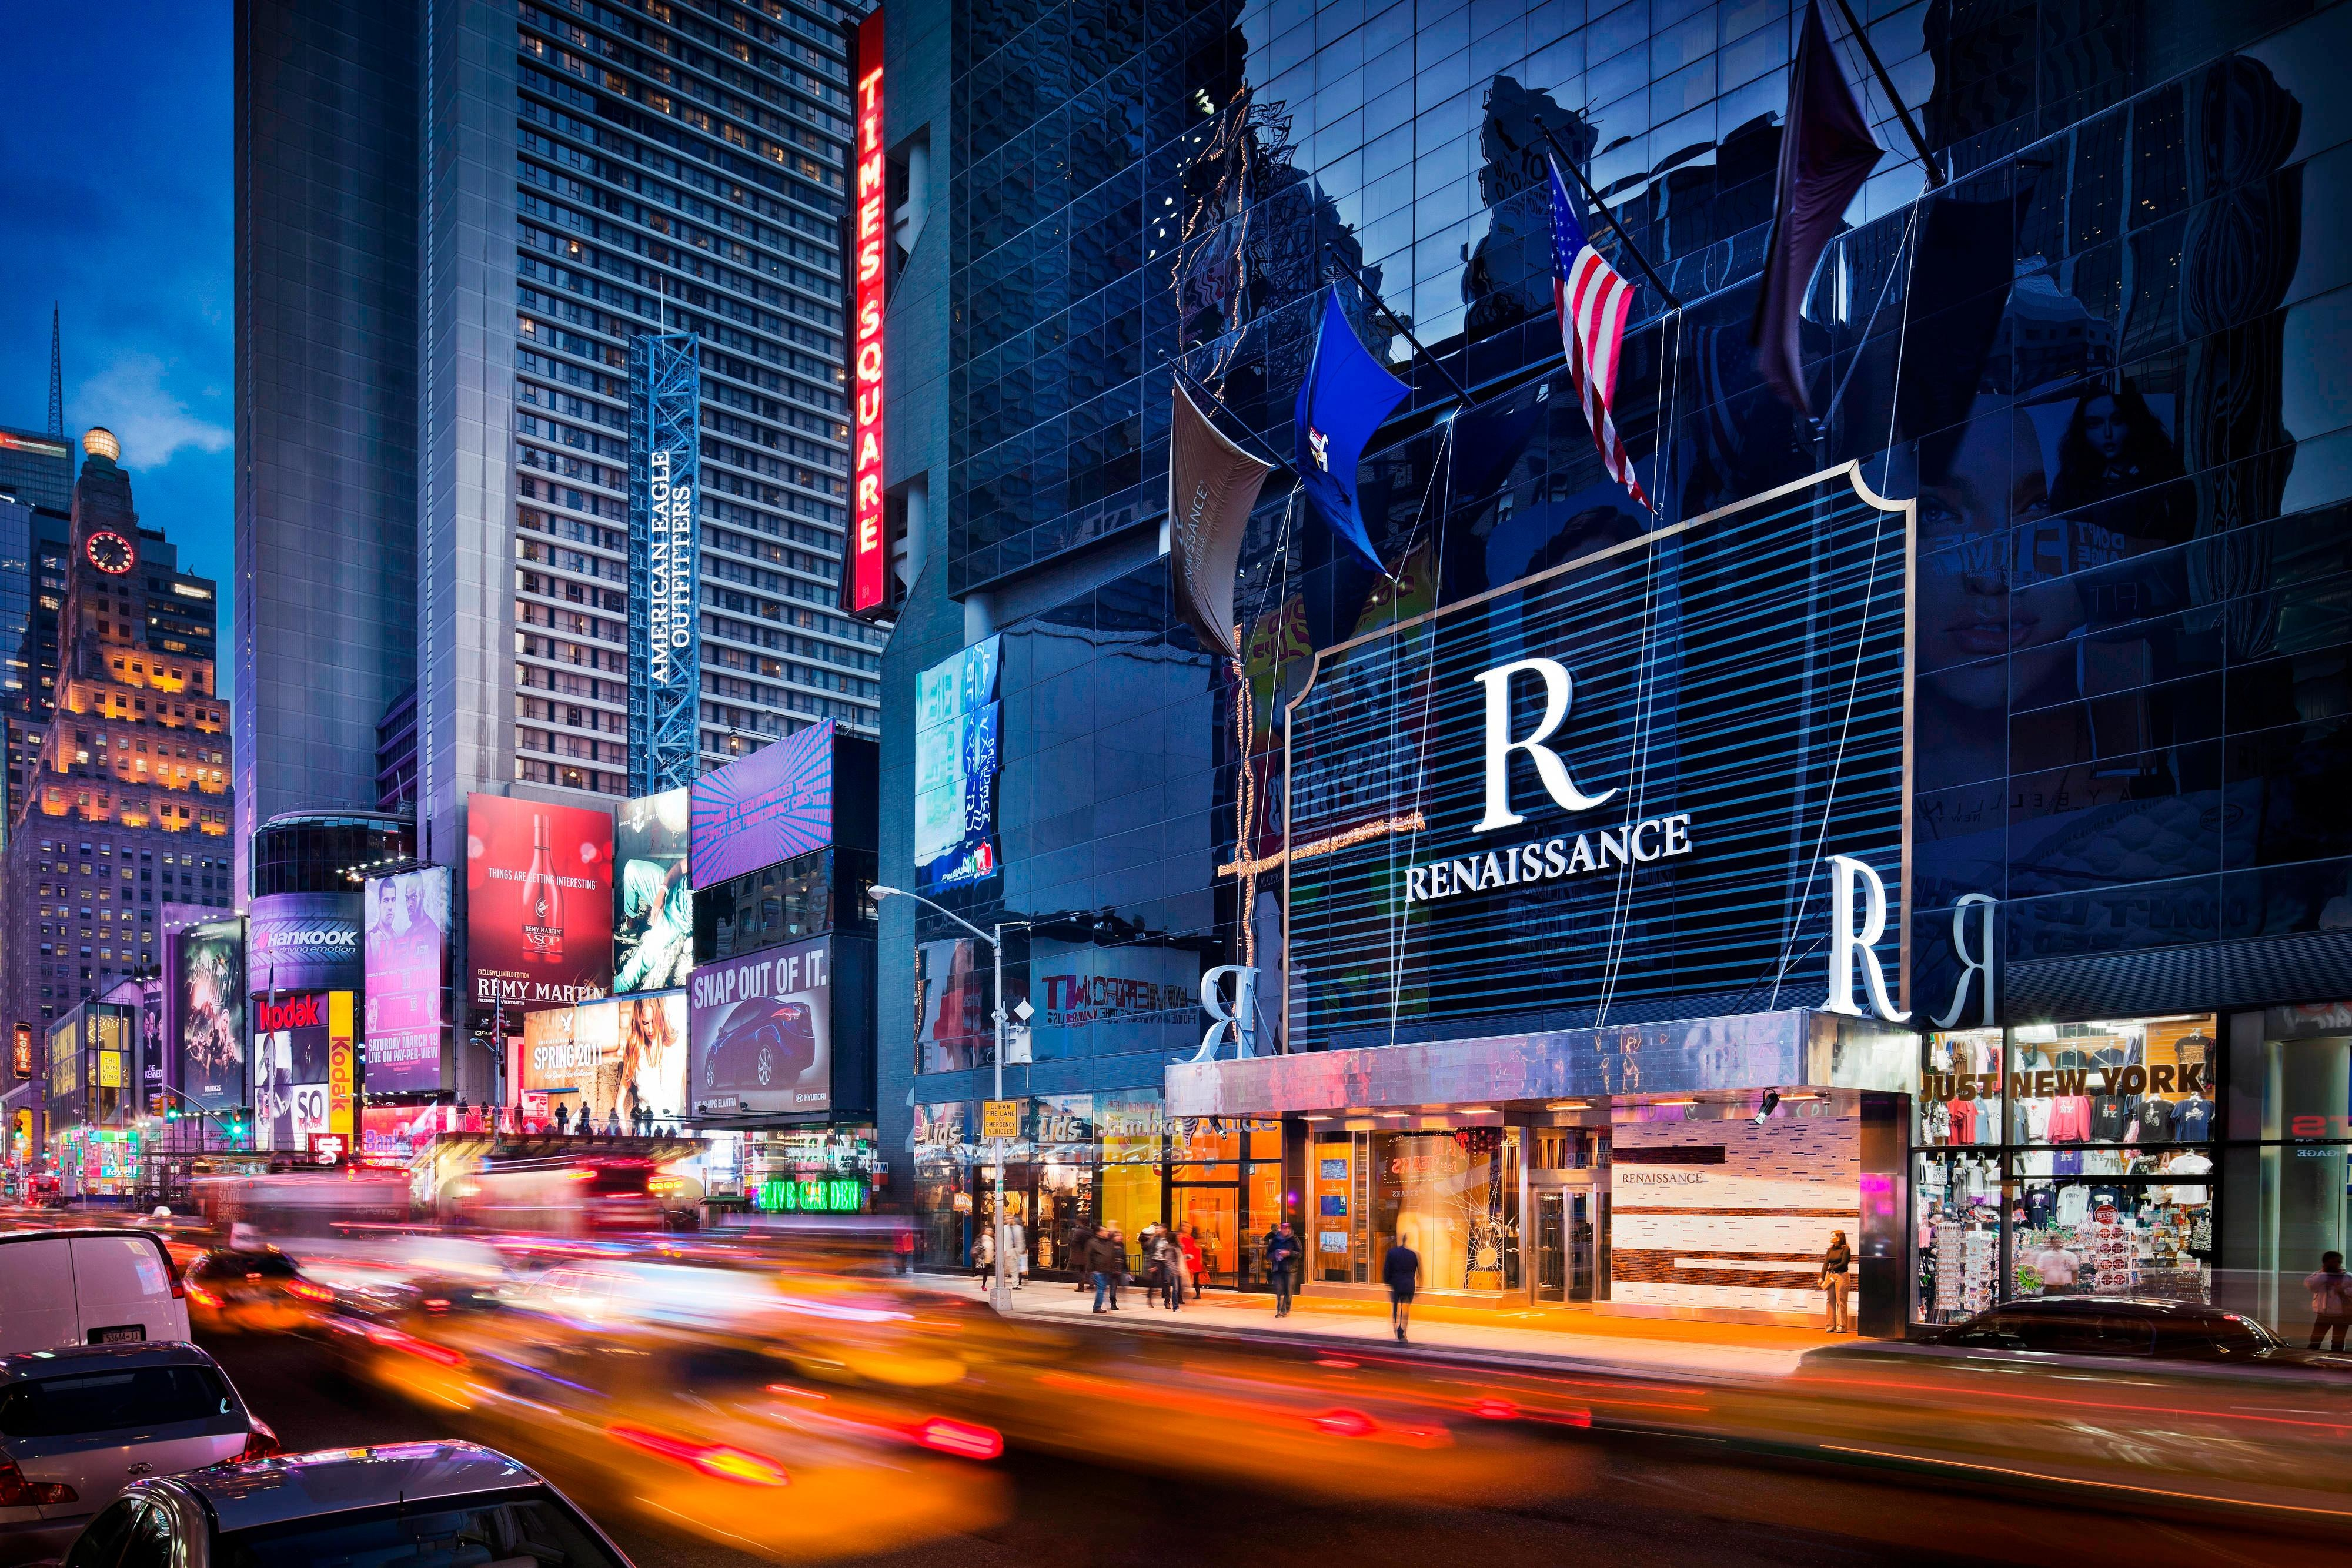 Time Square luxury hotel